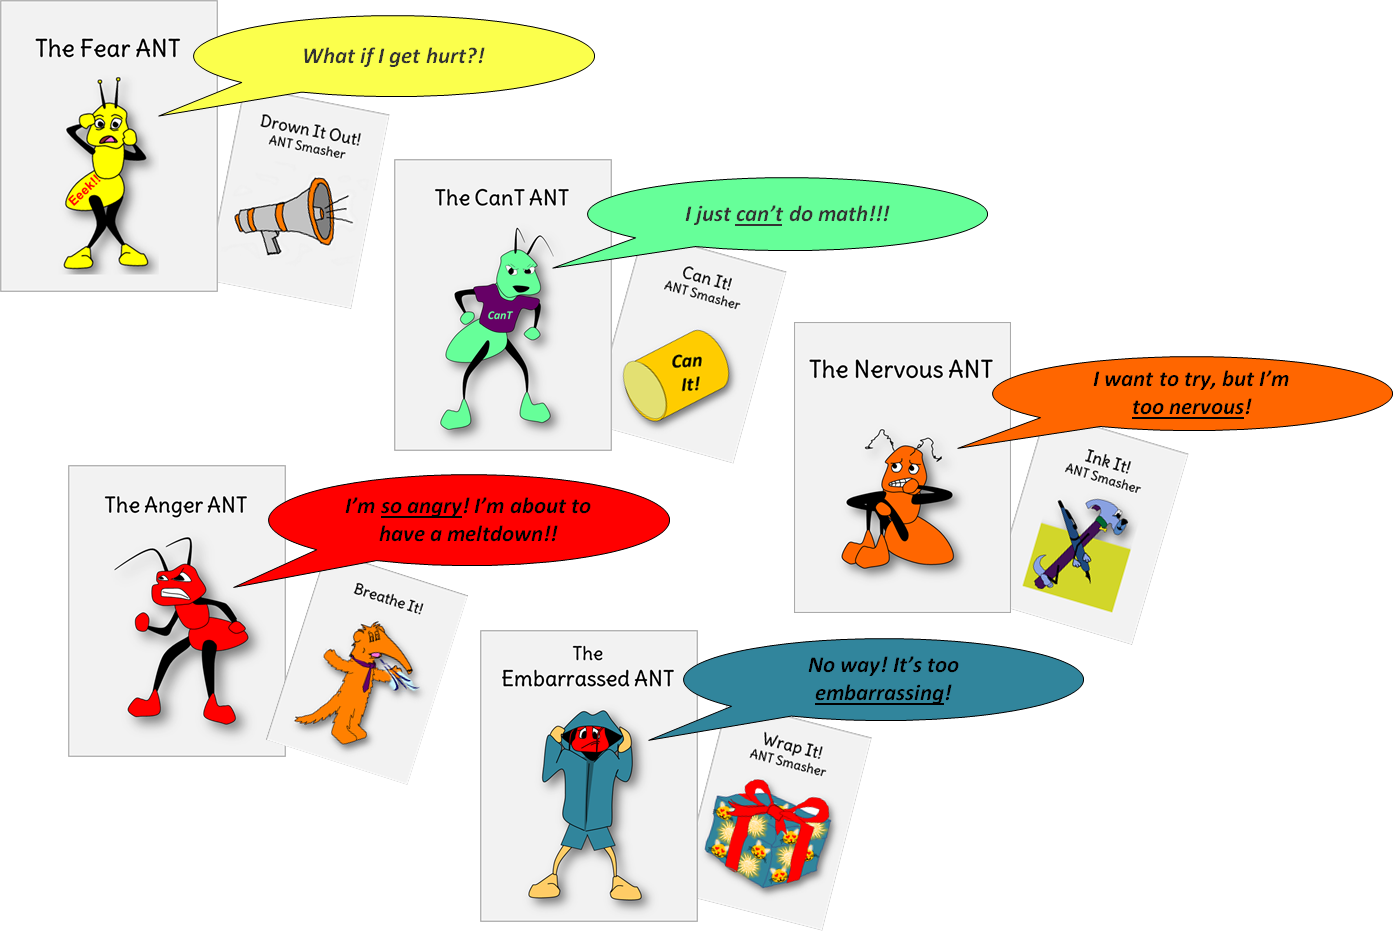 Ant - Simple English Wikipedia, the free encyclopedia